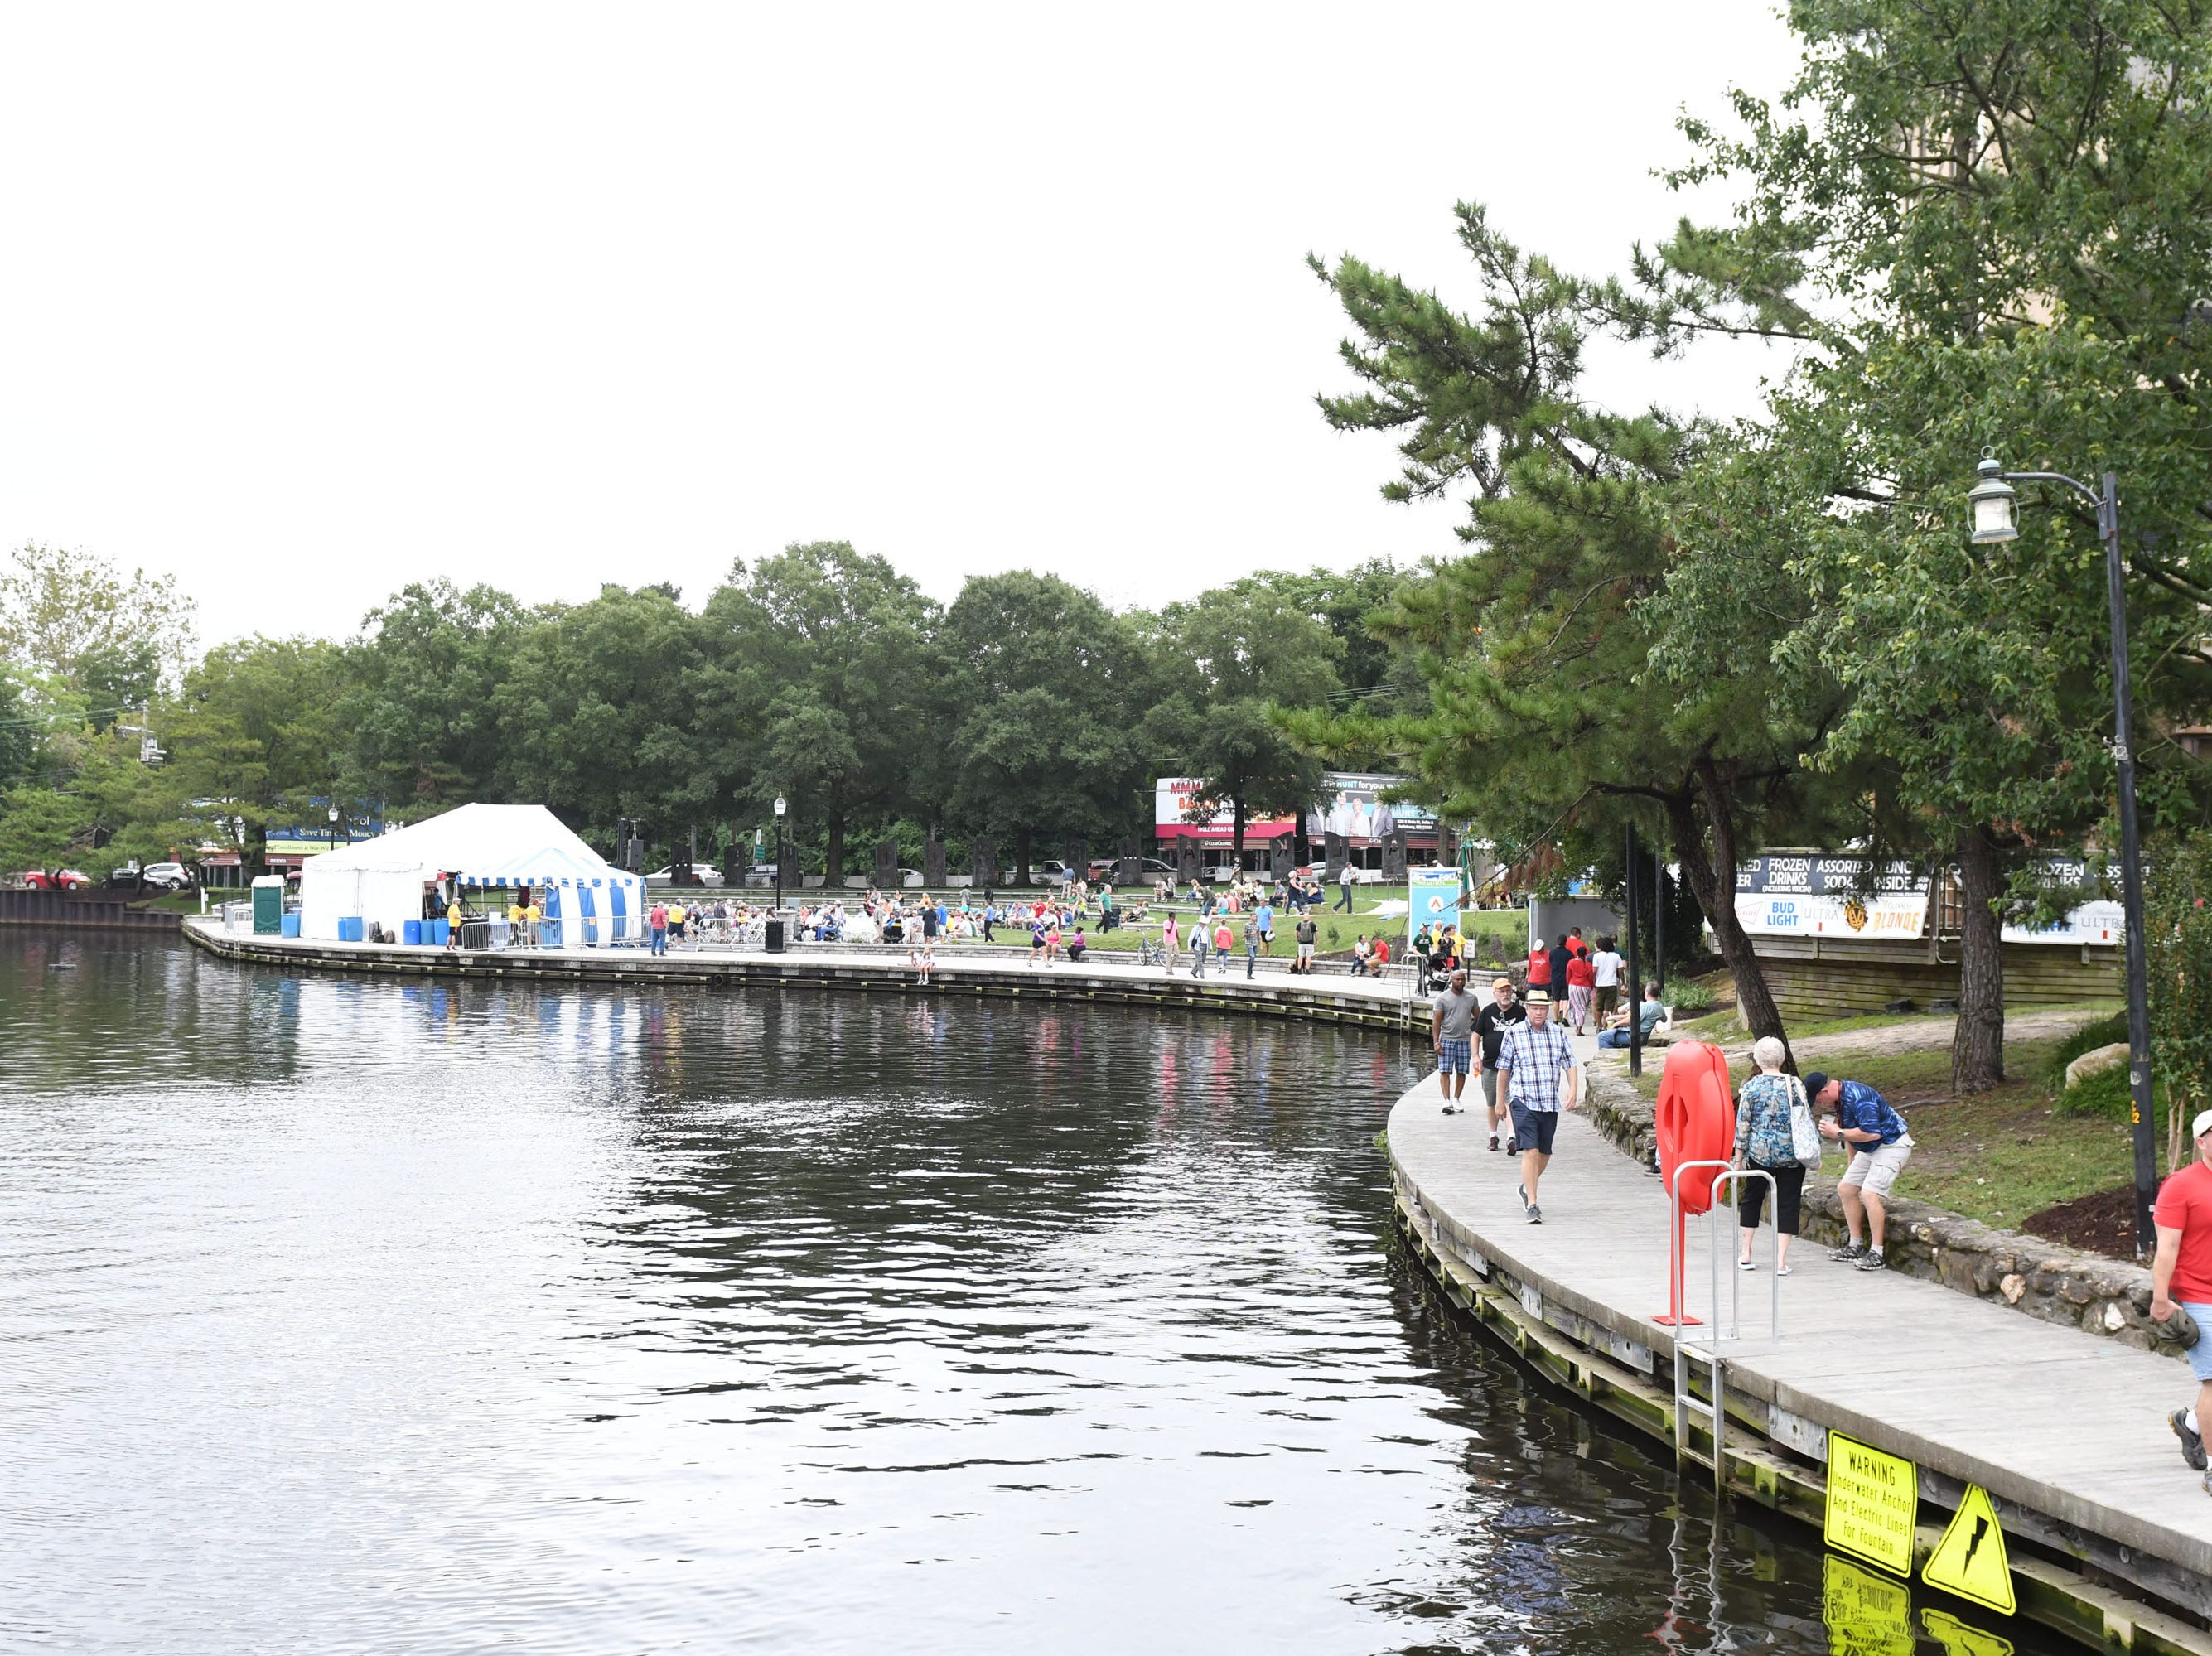 People stroll along the river walk in downtown Salisbury during the 78th National Folk Festival on Saturday, Sept. 8, 2018.